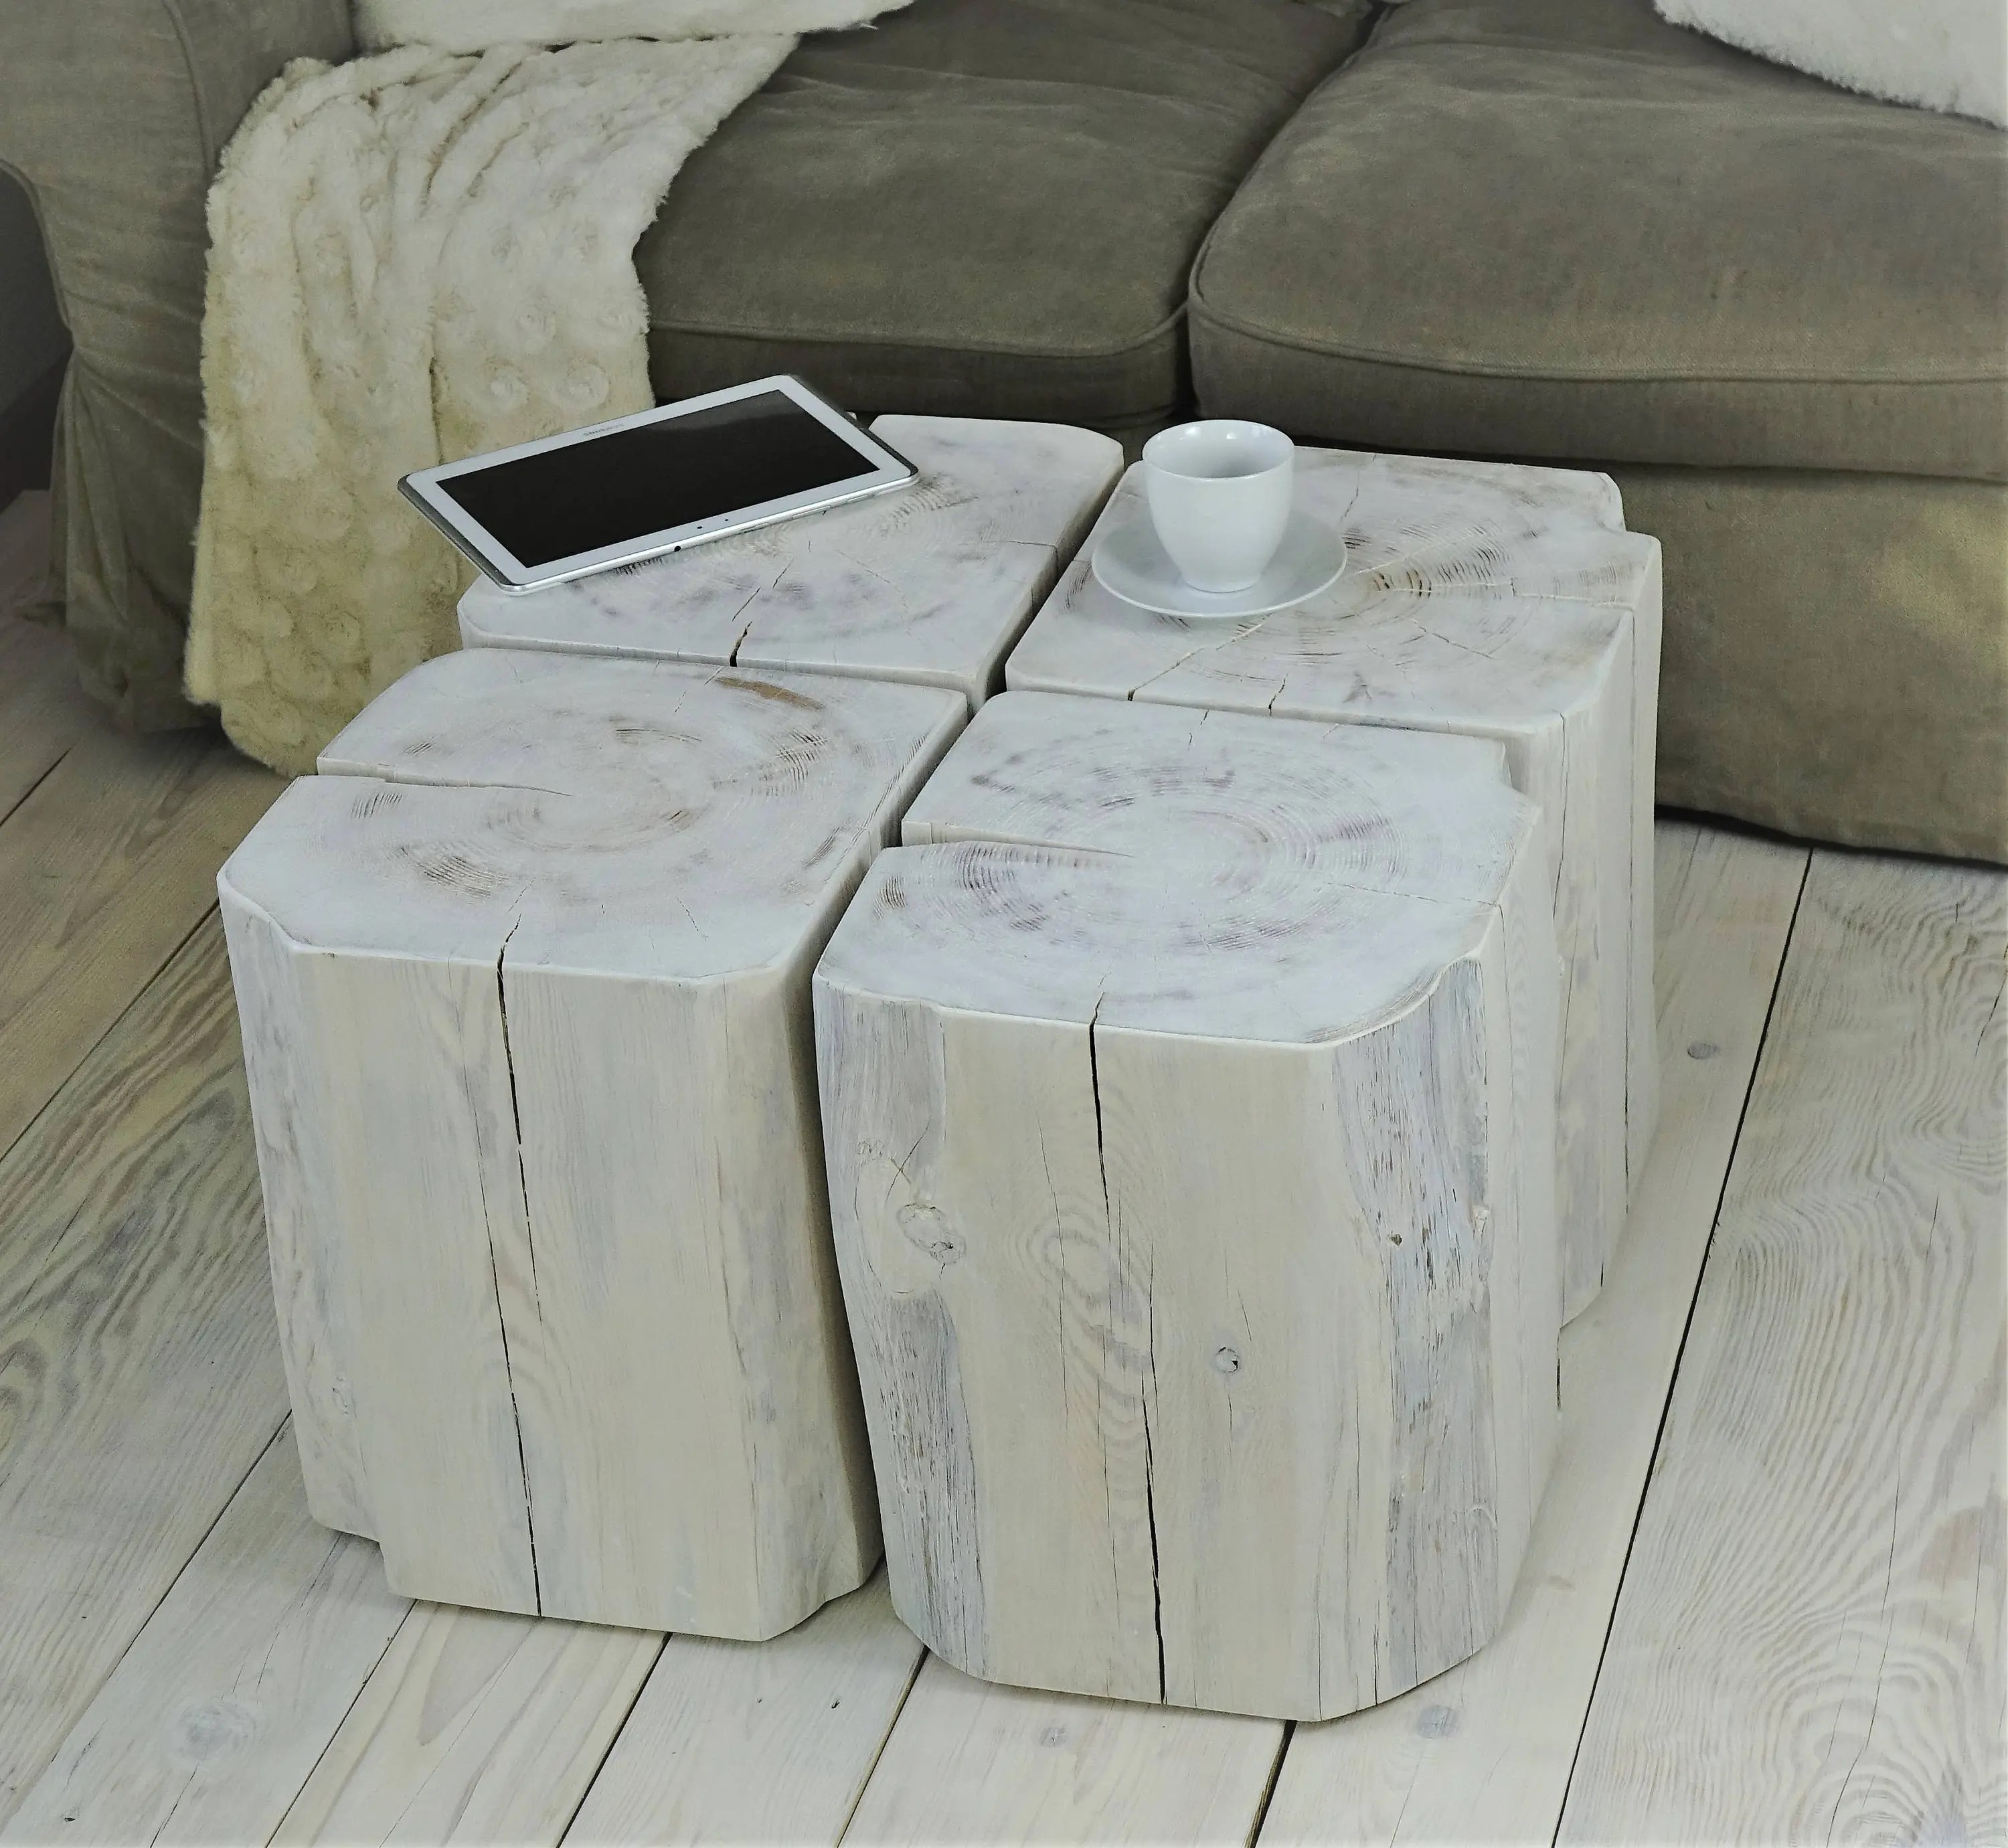 White Wood Block Side Table Set Of Stump Square Blocks Weiss Couchtisch Holz Baumblöcke Sgabello Ceppo Di Legno